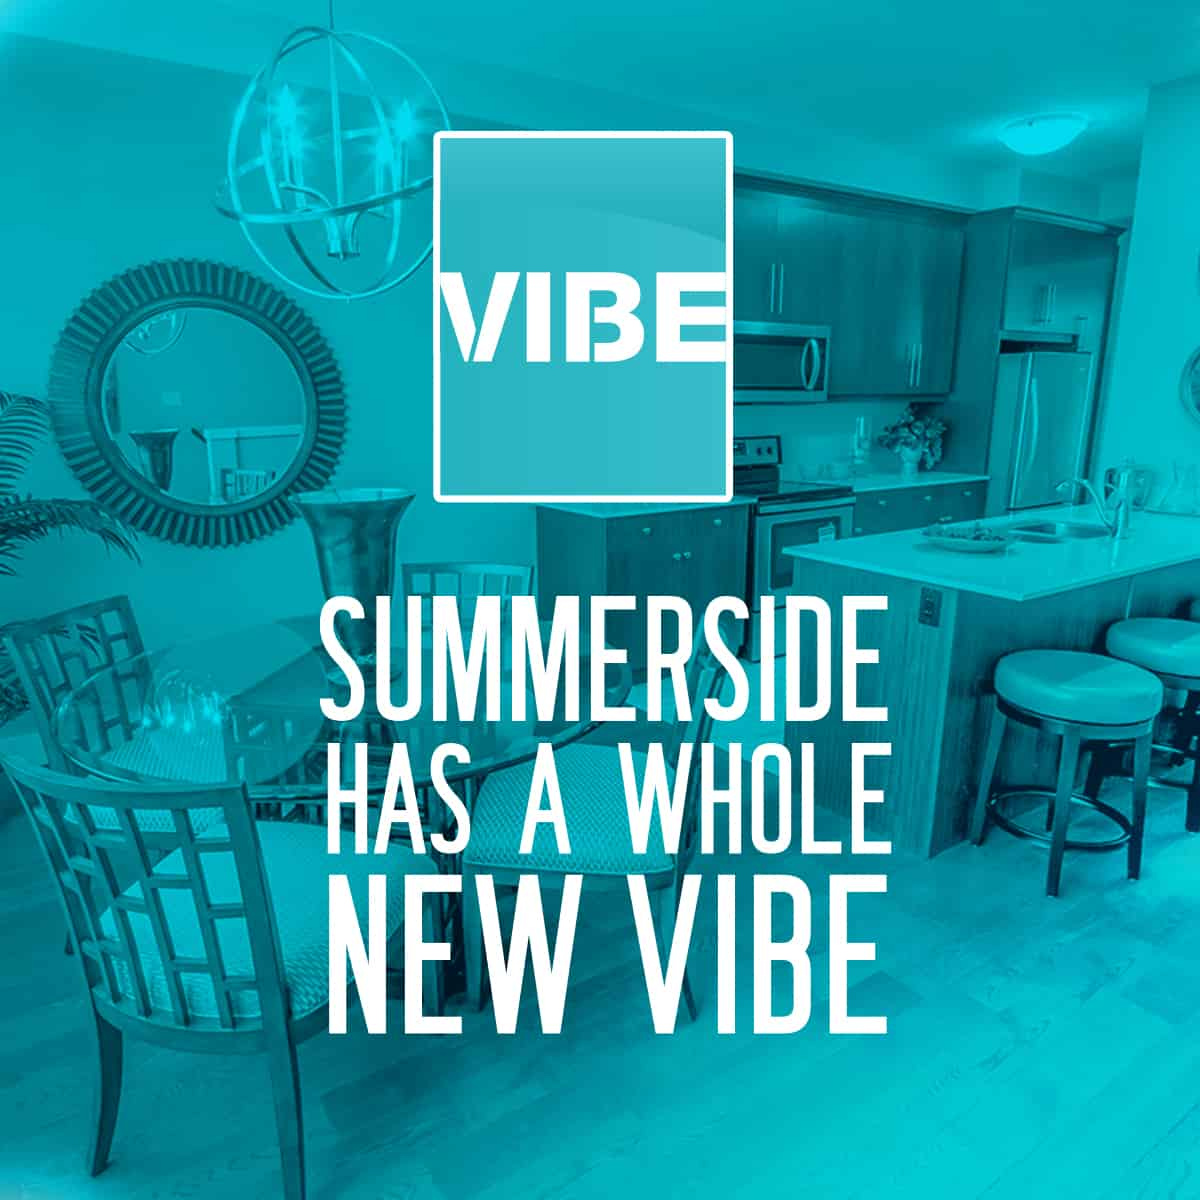 VIBE Open House Ad